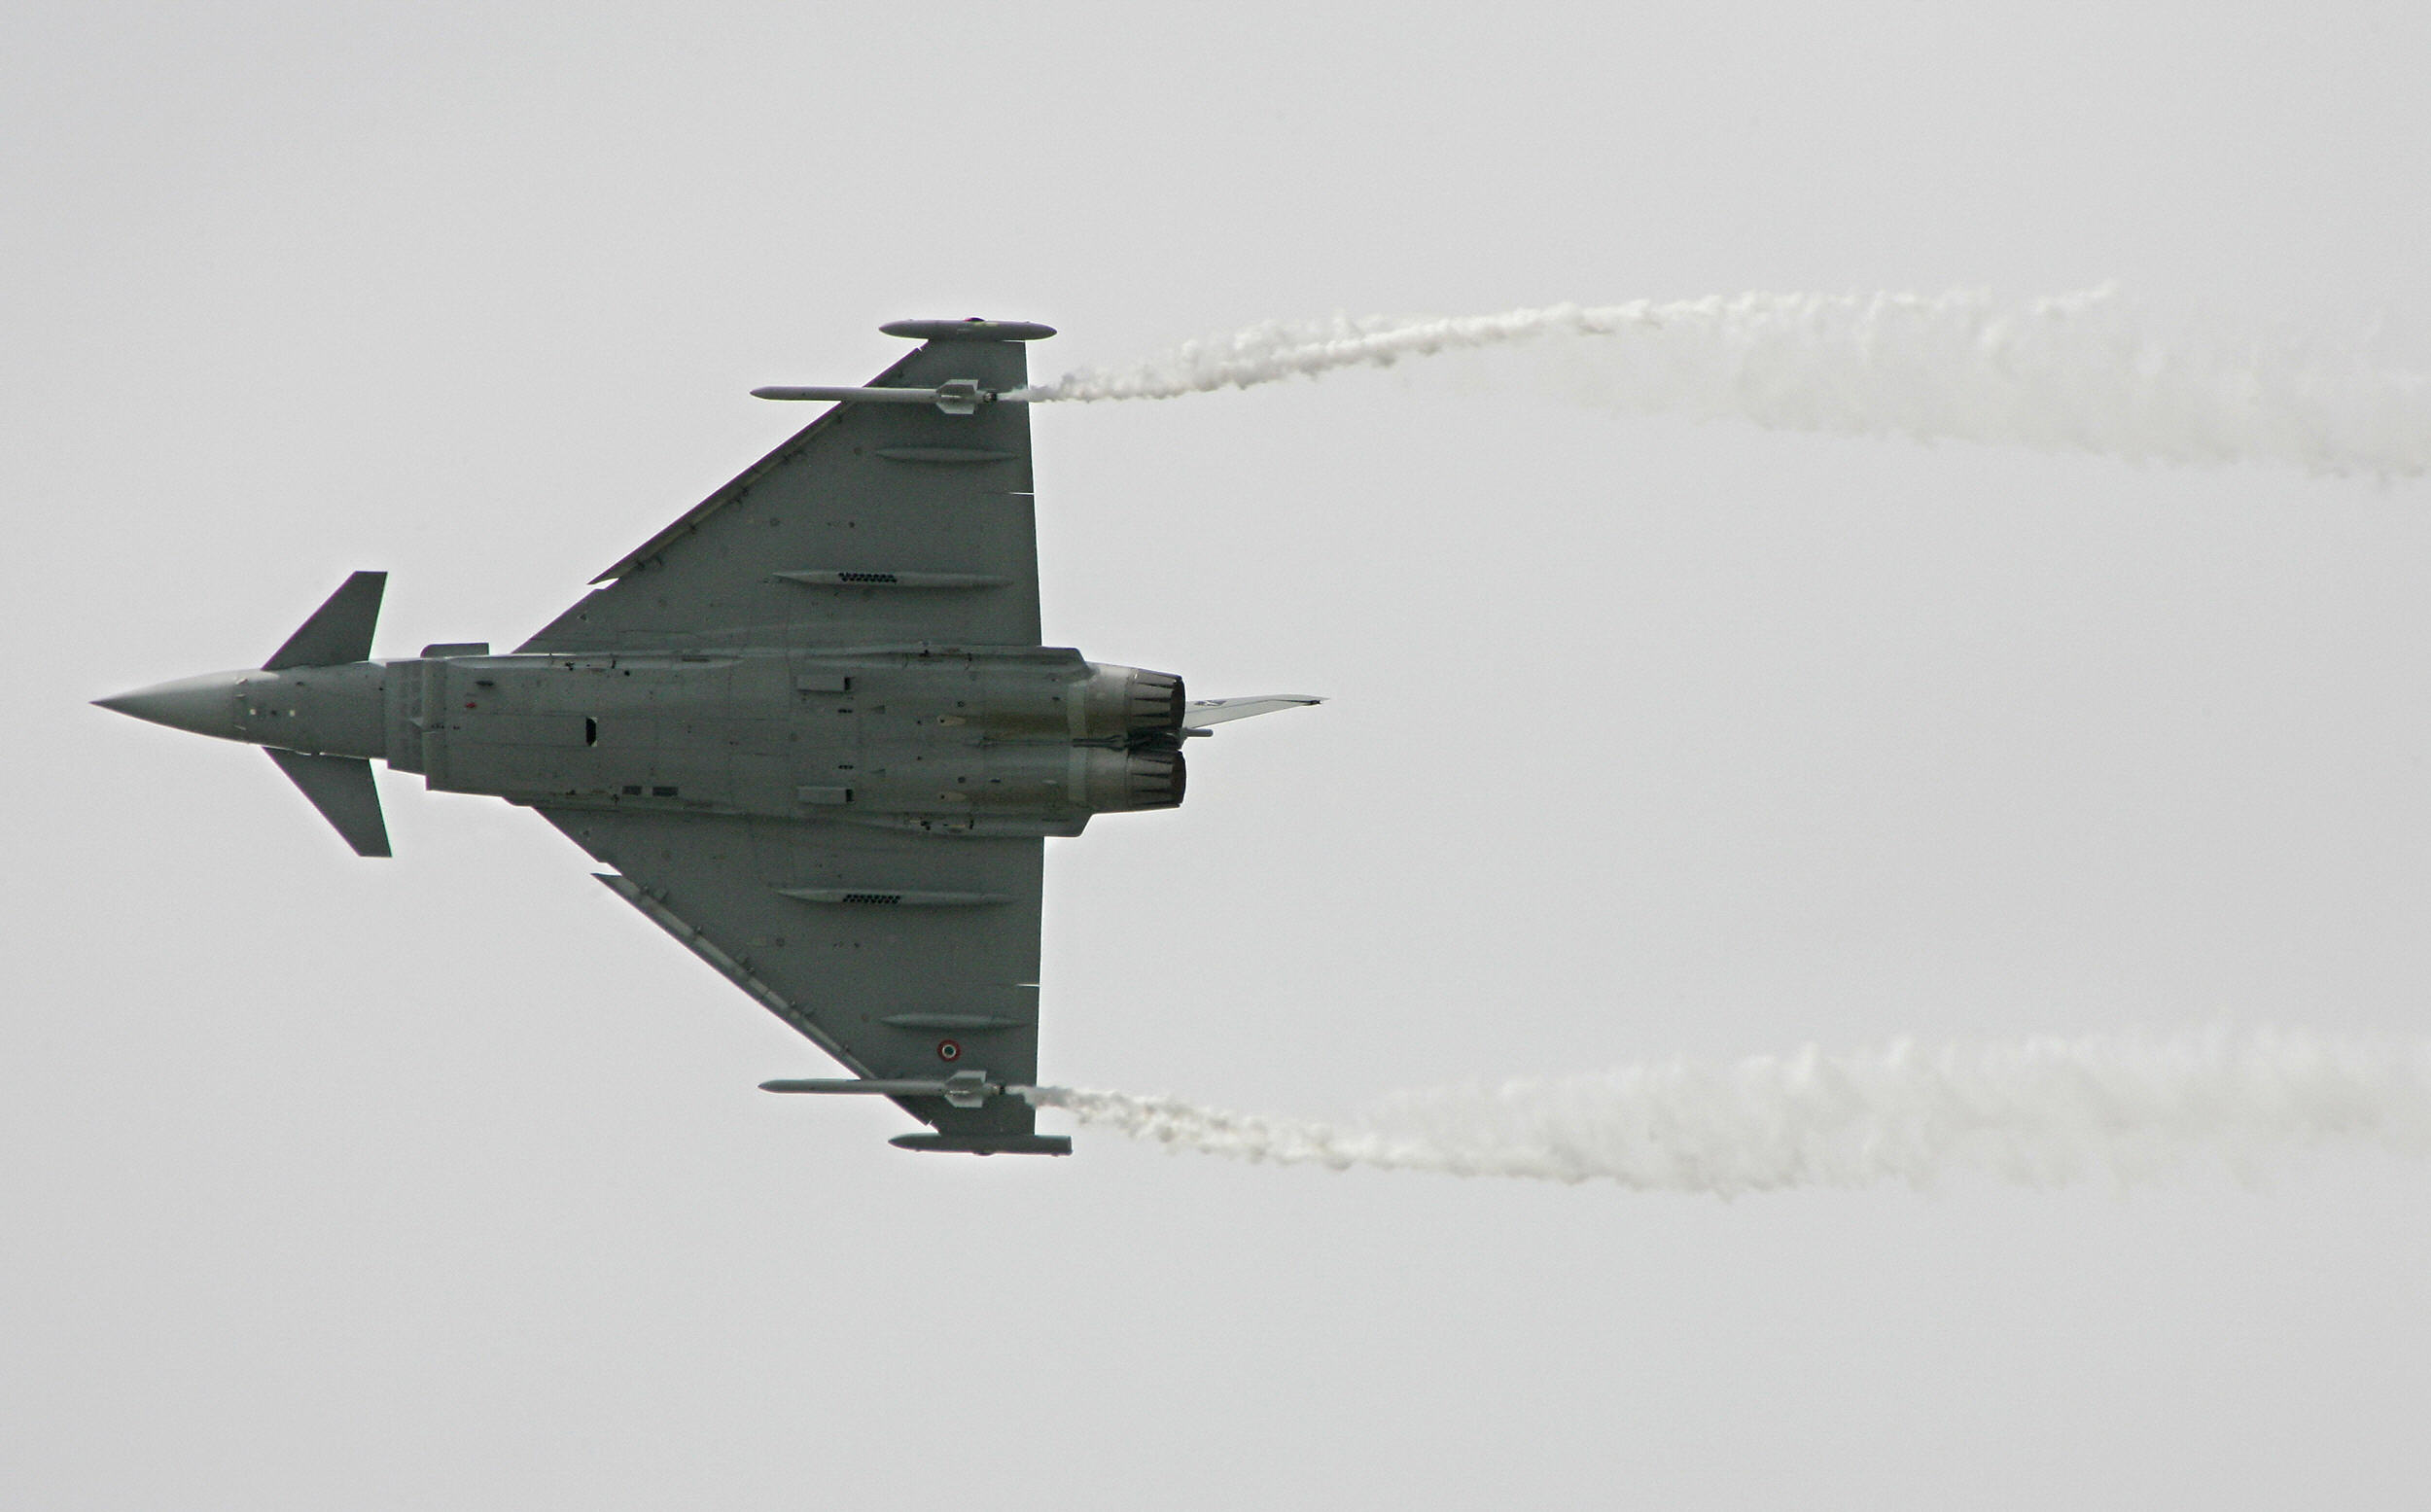 Qatar agrees to terms for buying Typhoon, Hawk aircraft from UK